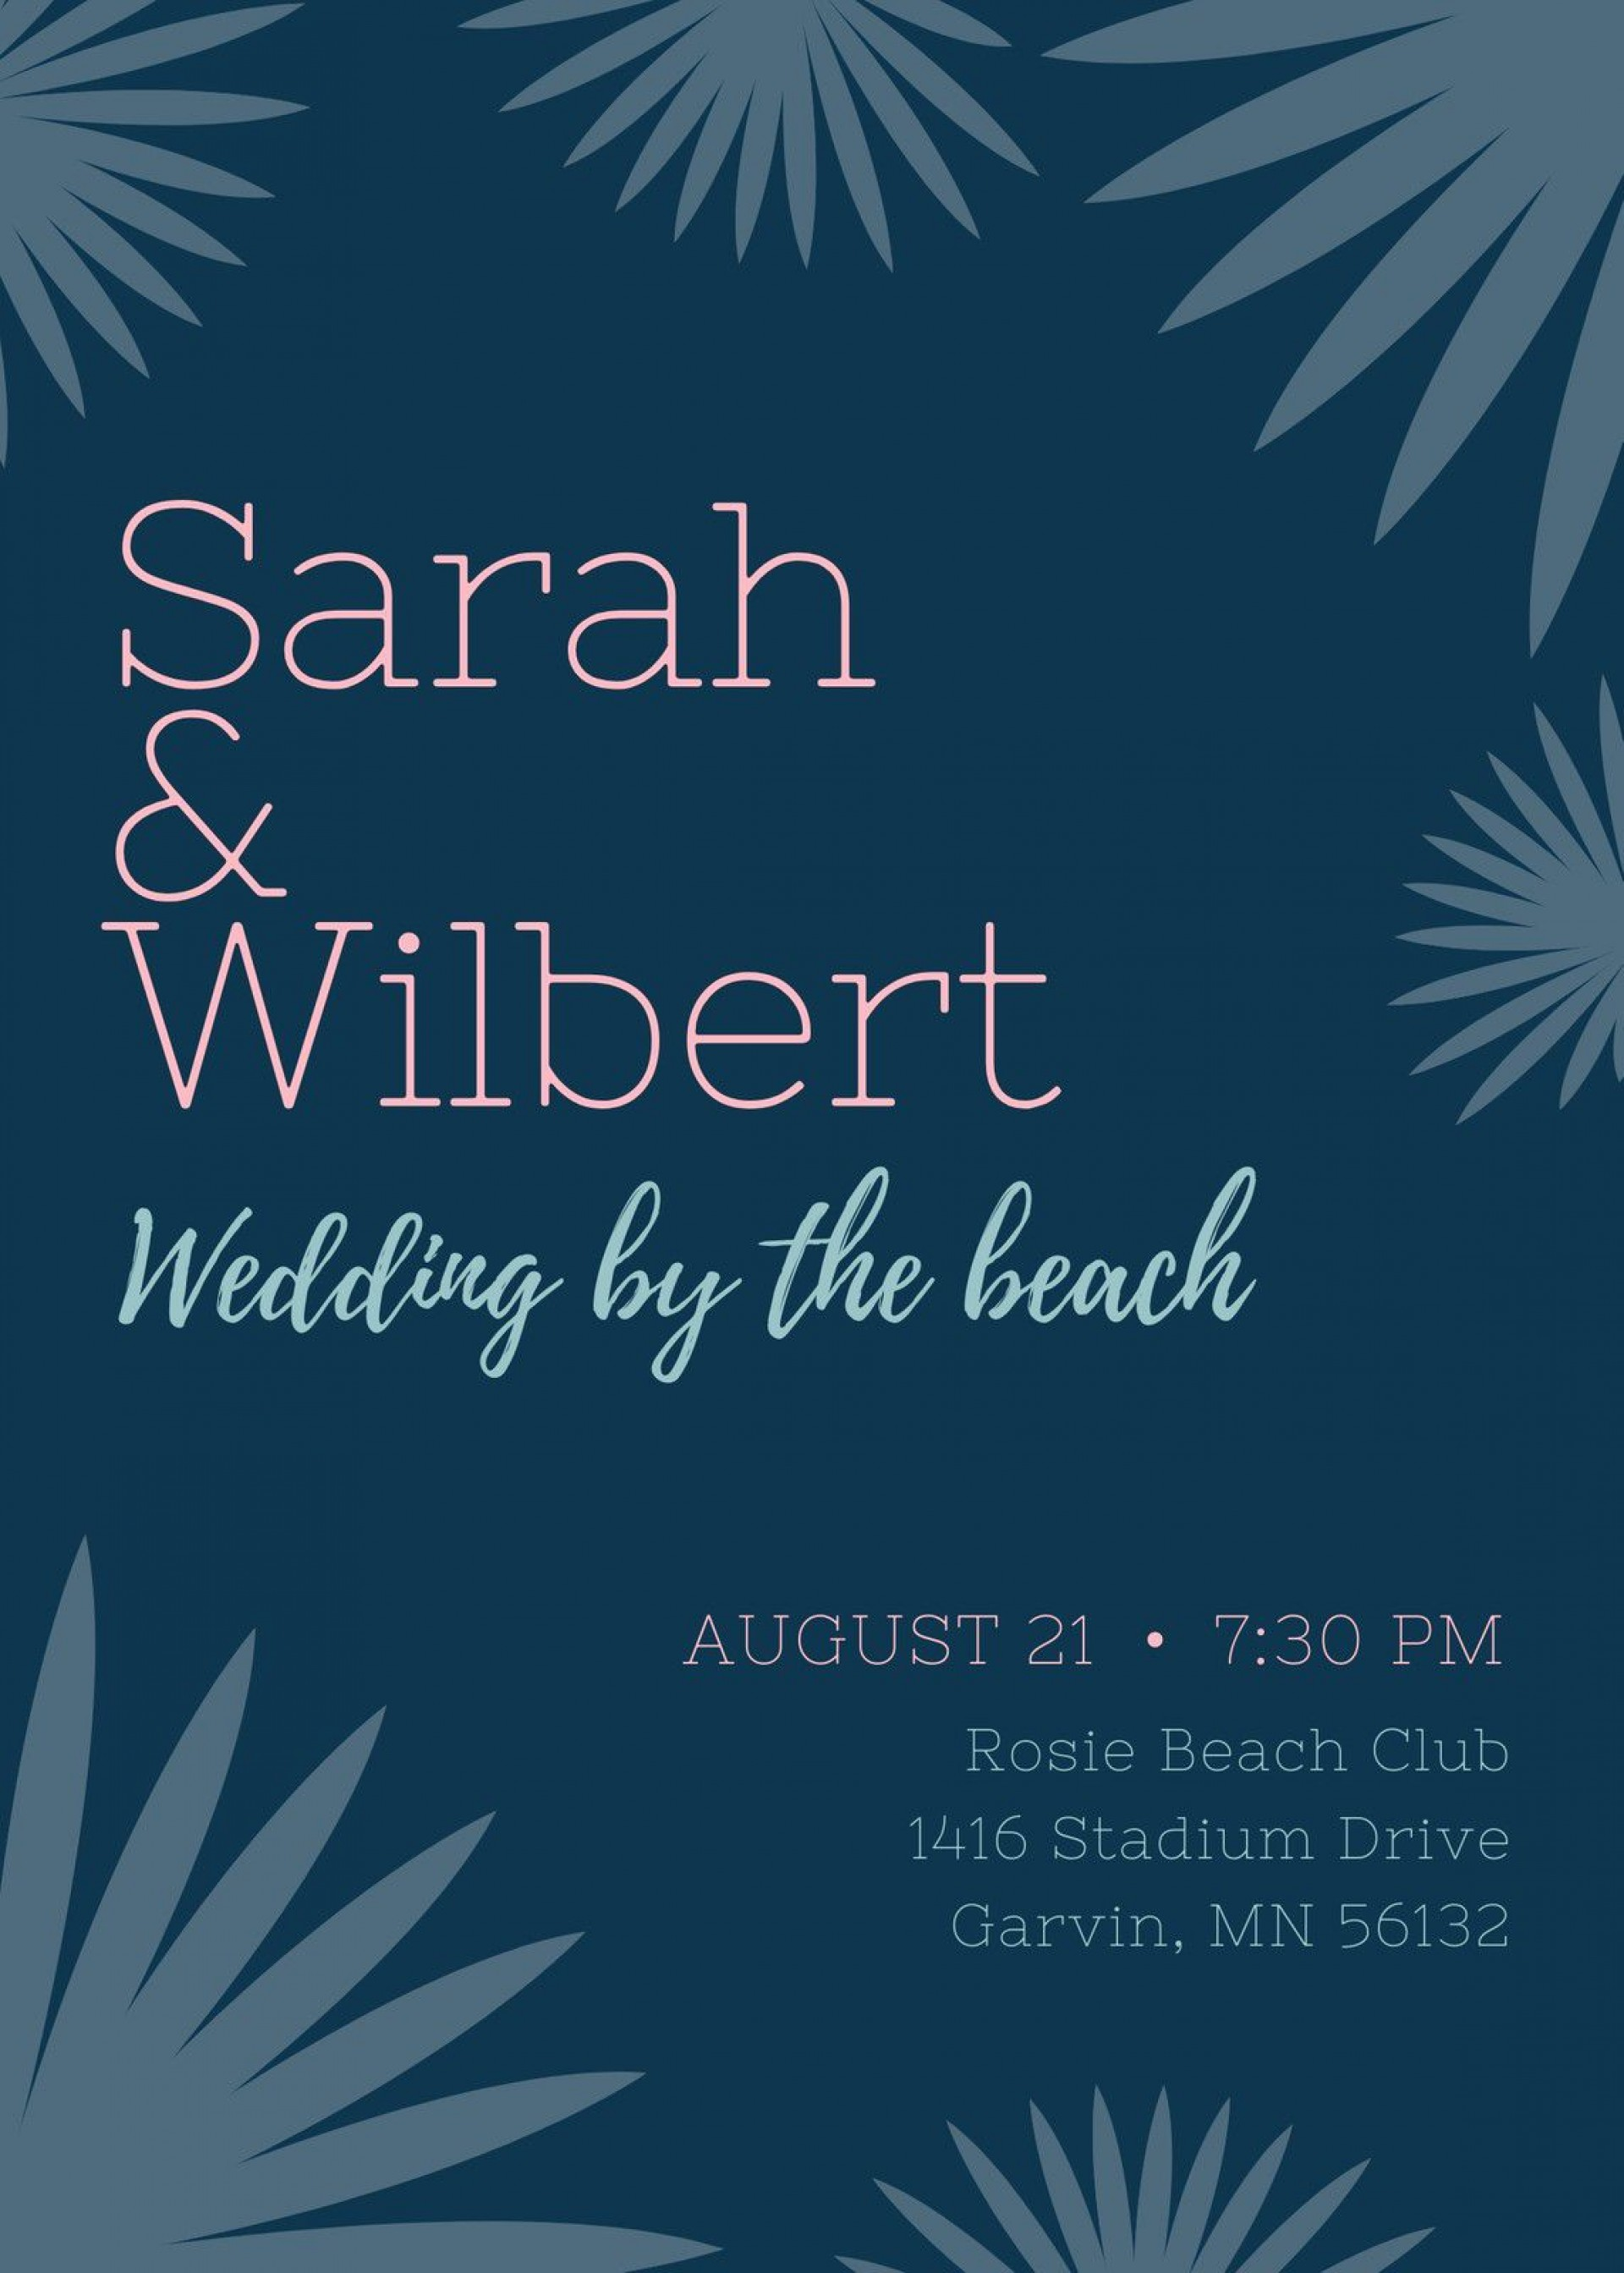 003 Fascinating Beach Wedding Invitation Template Example  Templates Free Download For Word1920